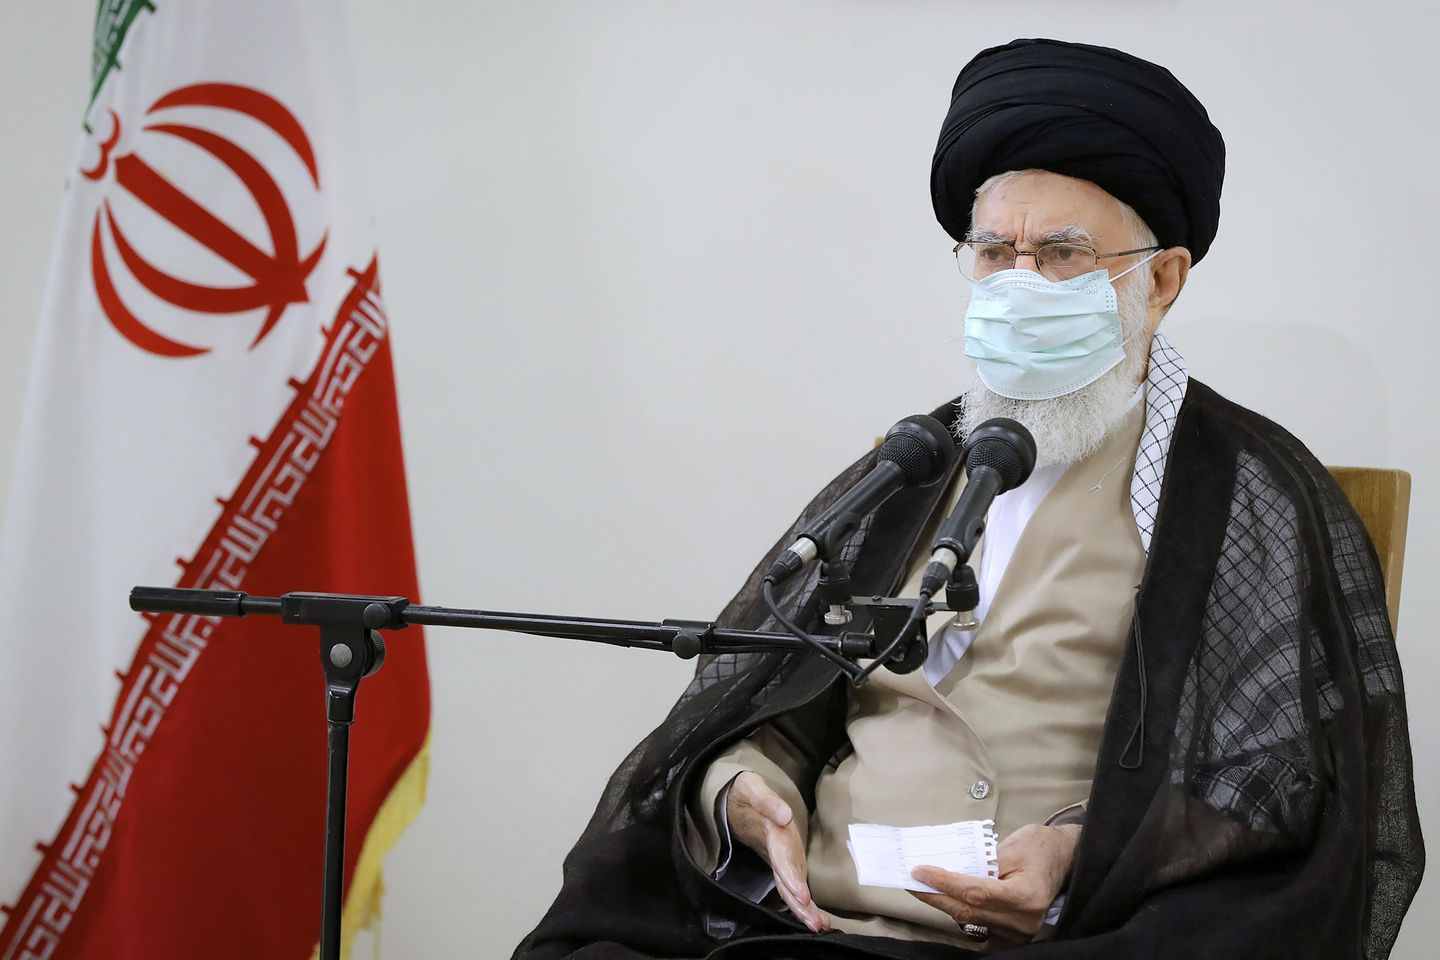 U.S. breaks silence, condemns reports of demonstrators shot by Iranian security forces